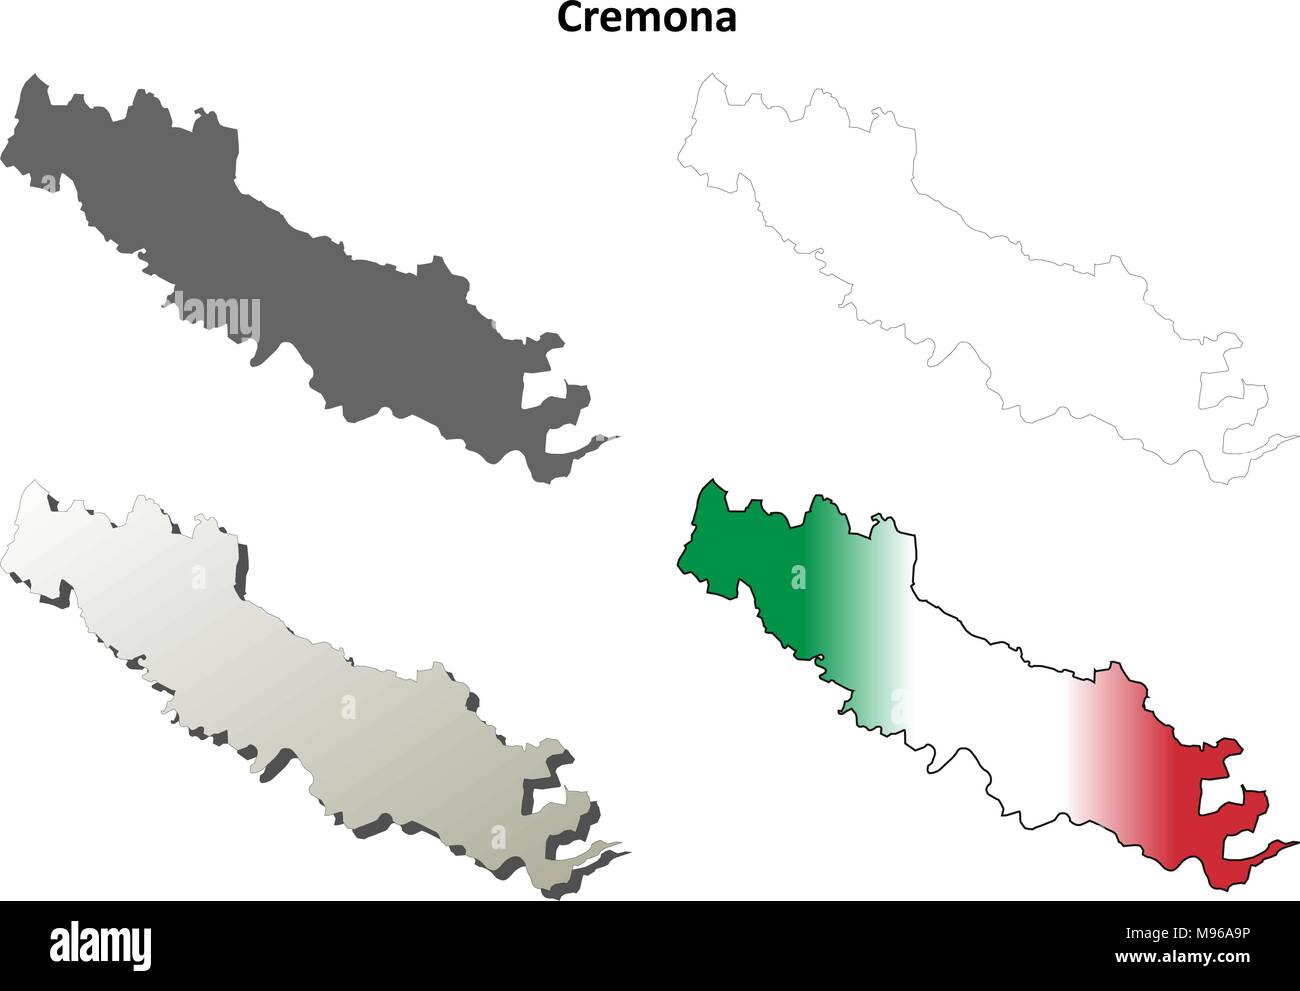 Italy Province Of Cremona Stock Photos Italy Province Of Cremona